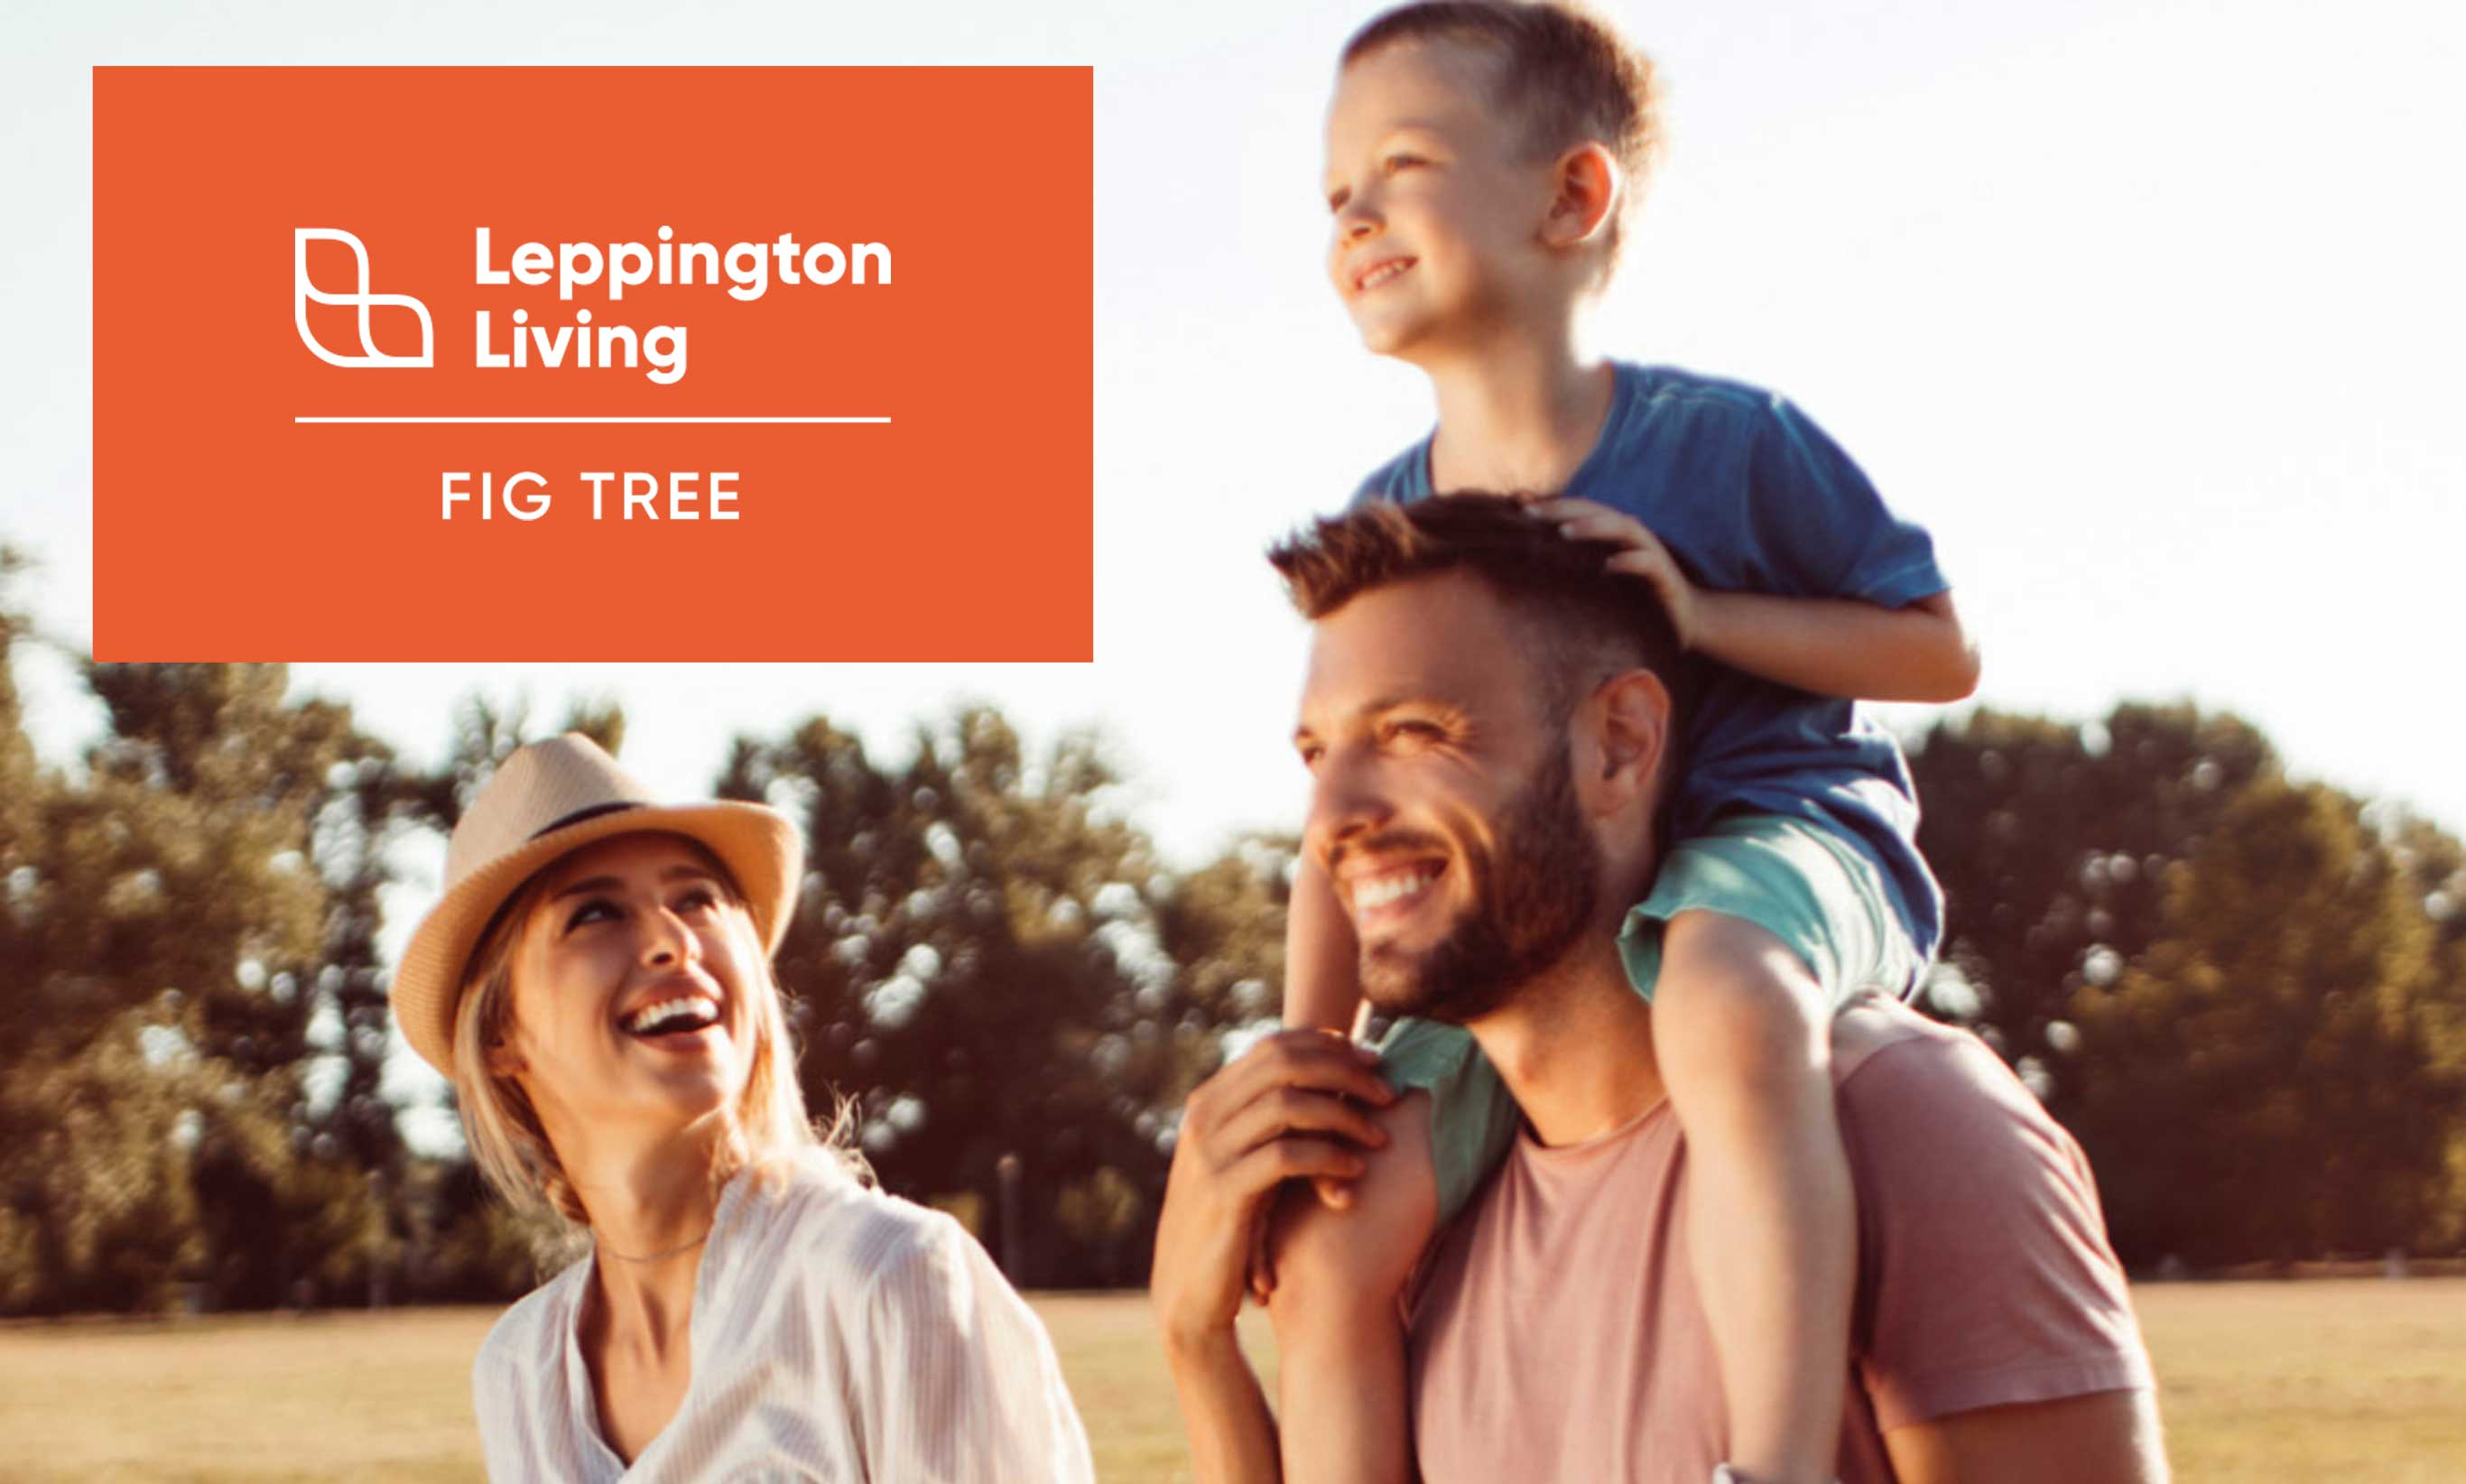 Fig Tree at Leppington Living